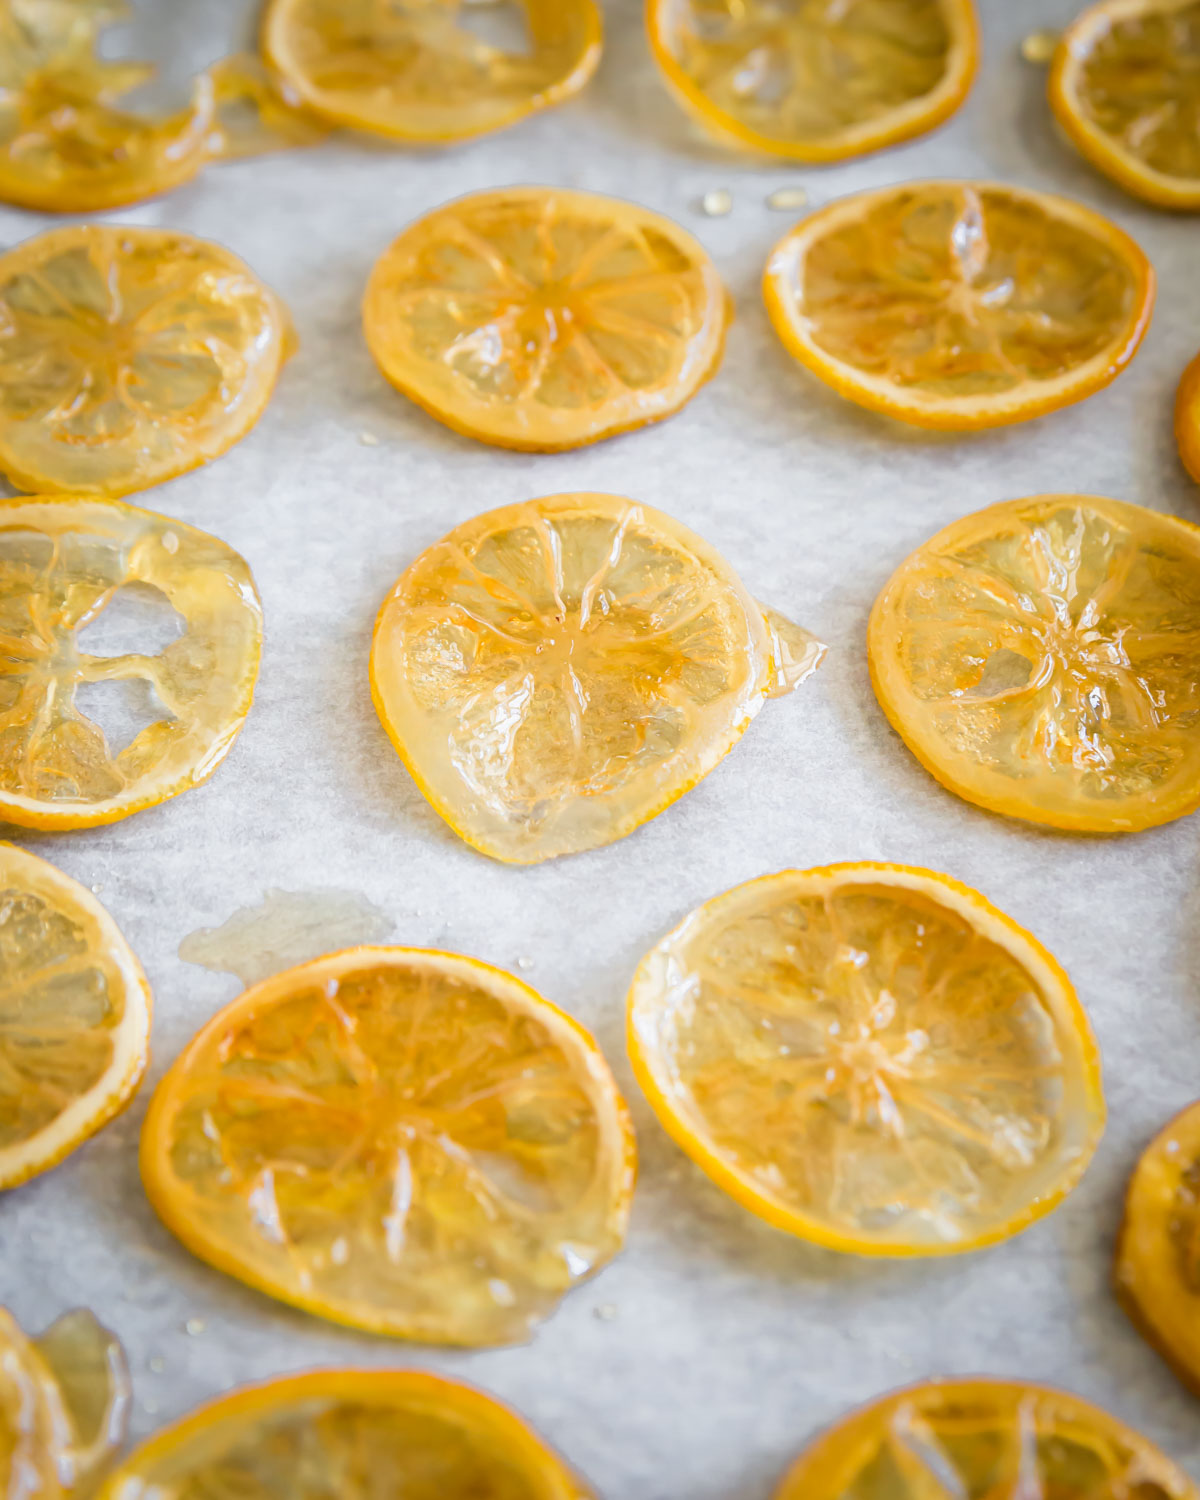 Candied lemon slices after drying for 24 hours ready to be used as dessert garnish or chopped up for baking recipes.